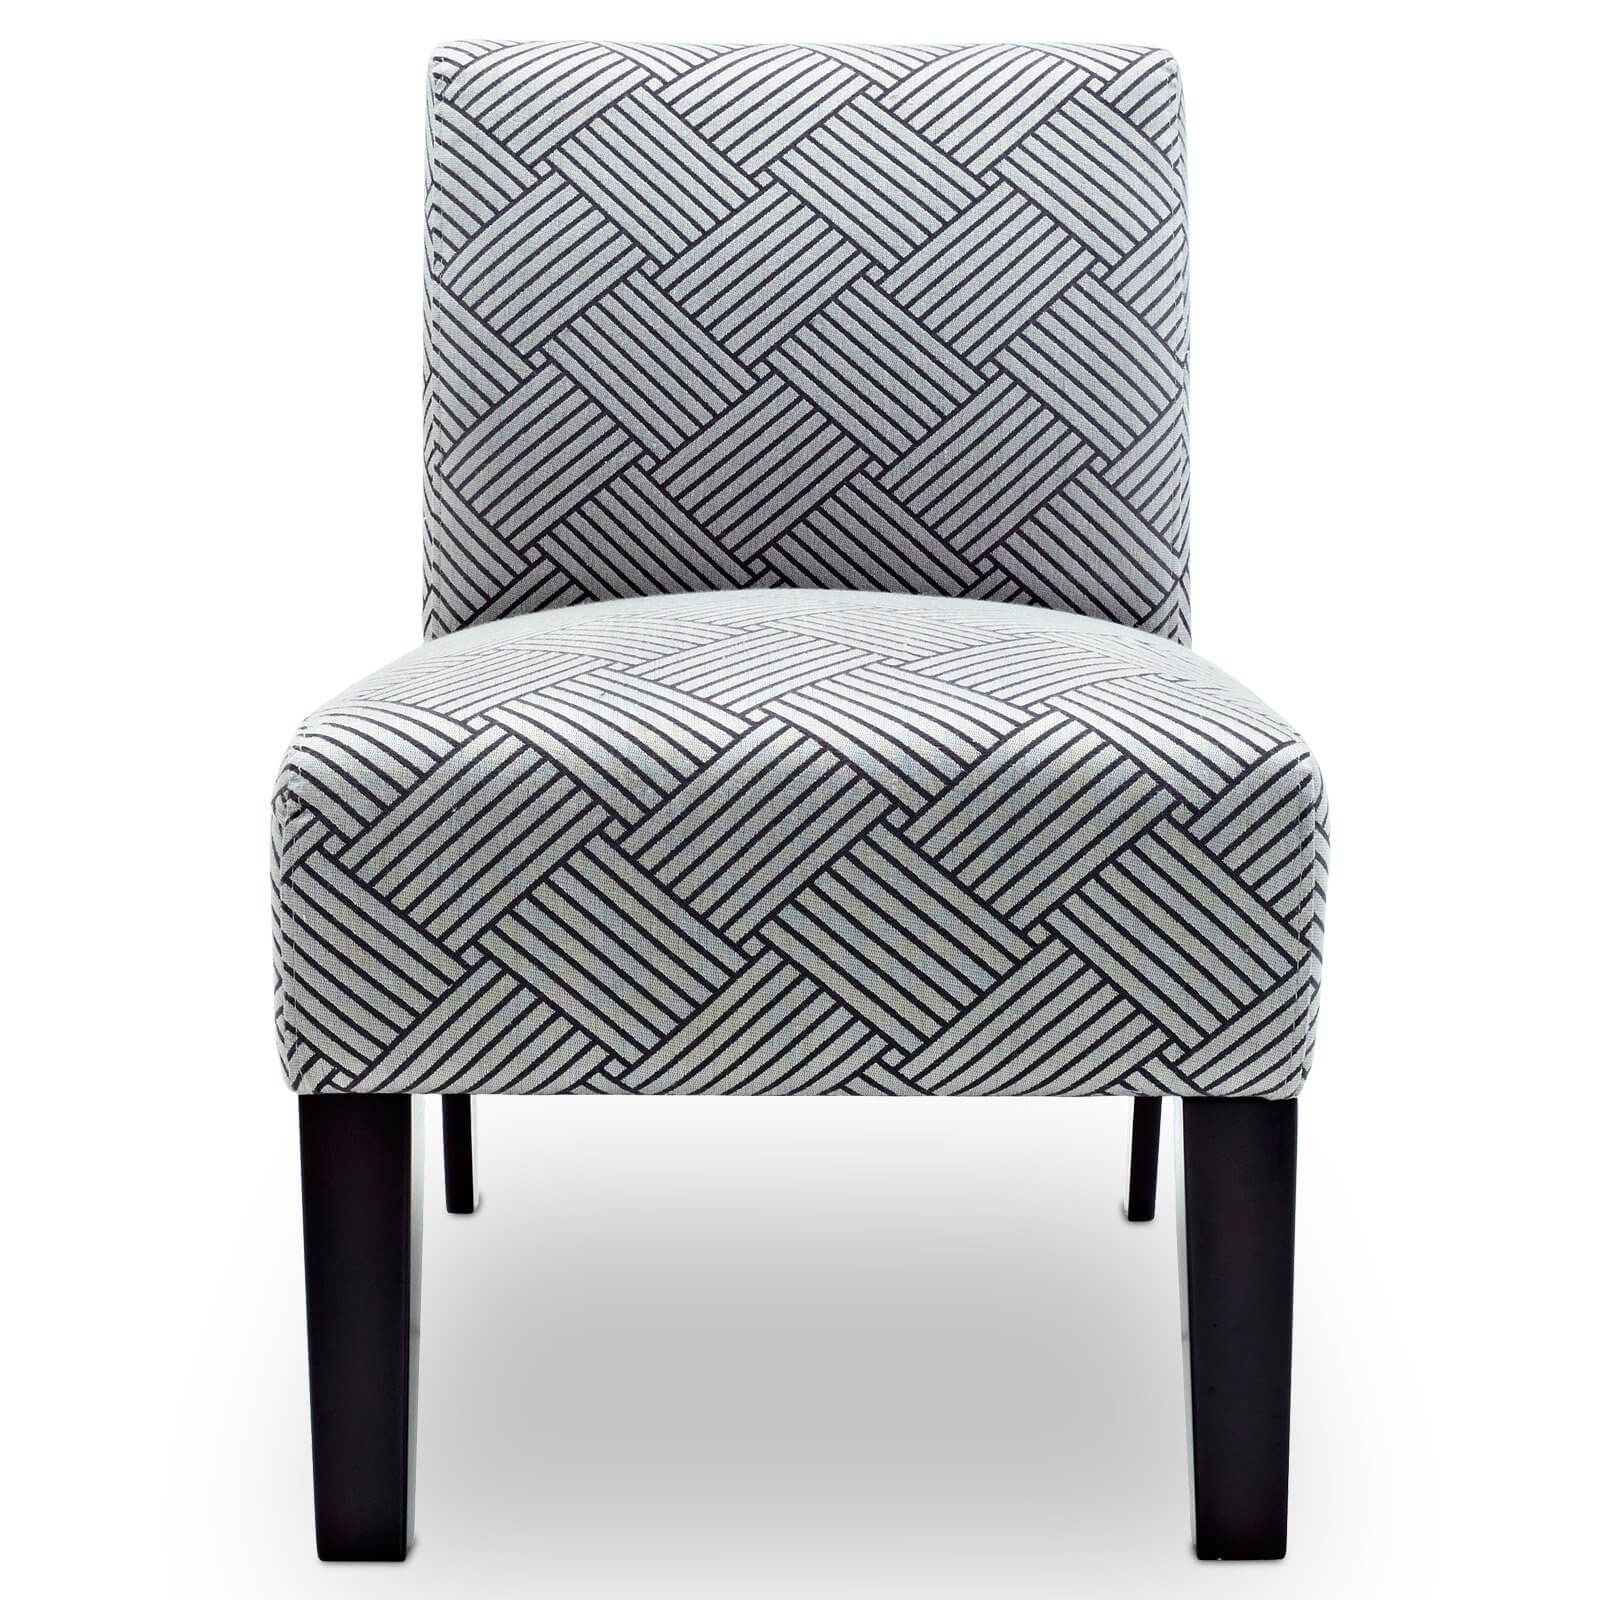 10 Attractive Accent Chairs Under 100 2020 Fabric Accent